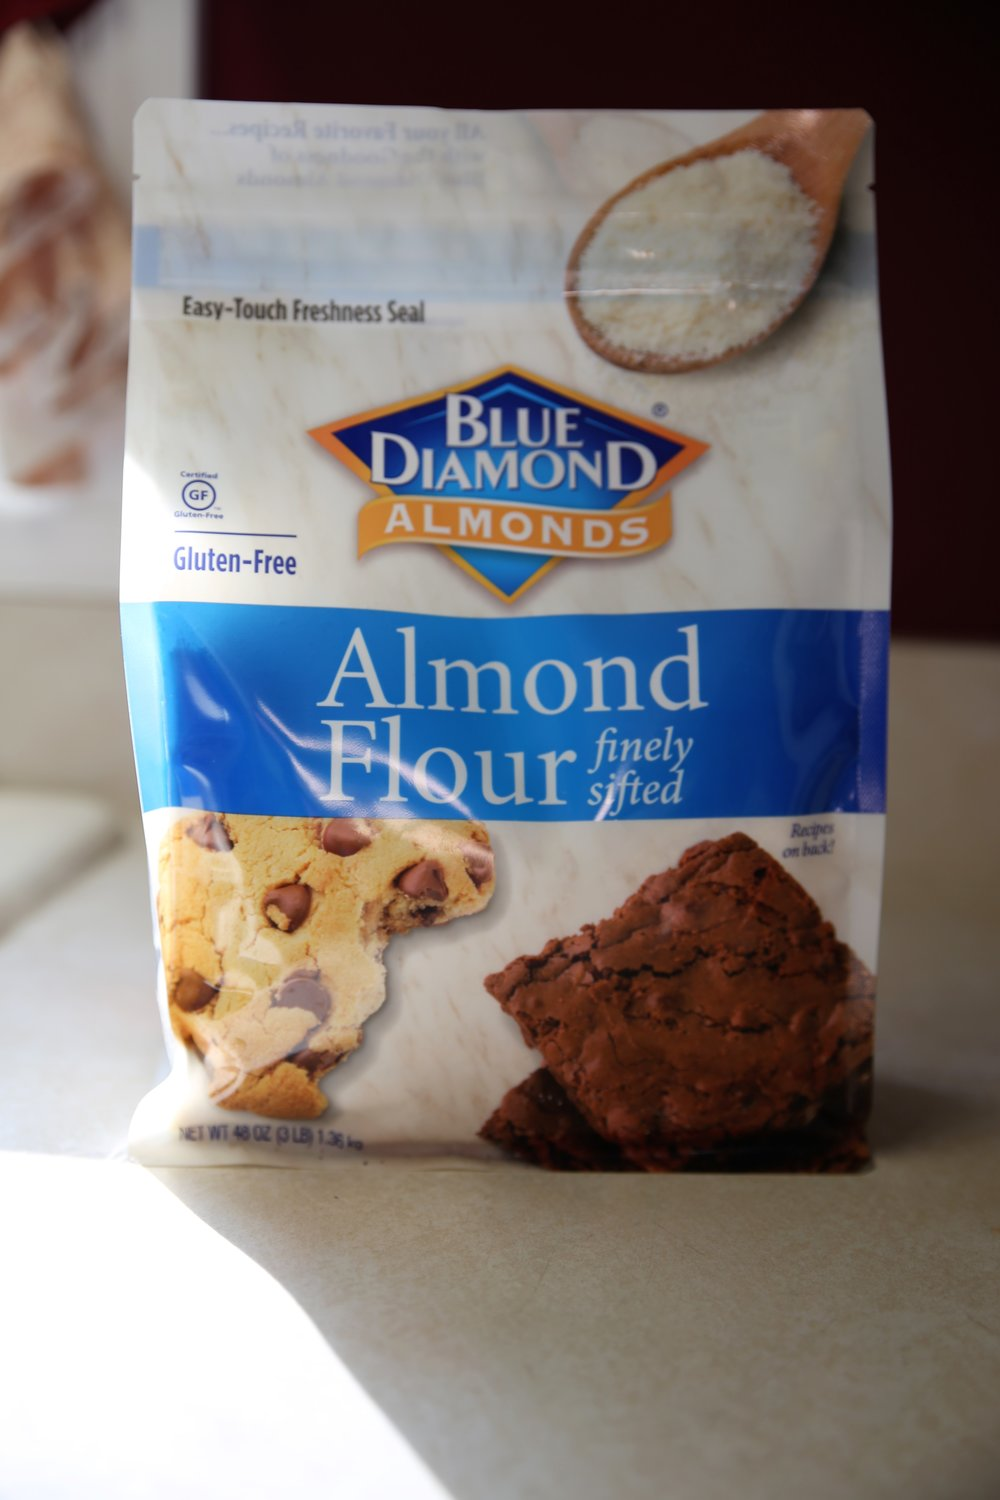 Almond Flour is a protein and healthy fat superstar flour alternative - Almond Flour is also not 1:1 to all purpose wheat flour; however it definitely plays a little nicer than coconut flour. Note: Almond flour has more moisture than regular wheat flour AND make sure to get